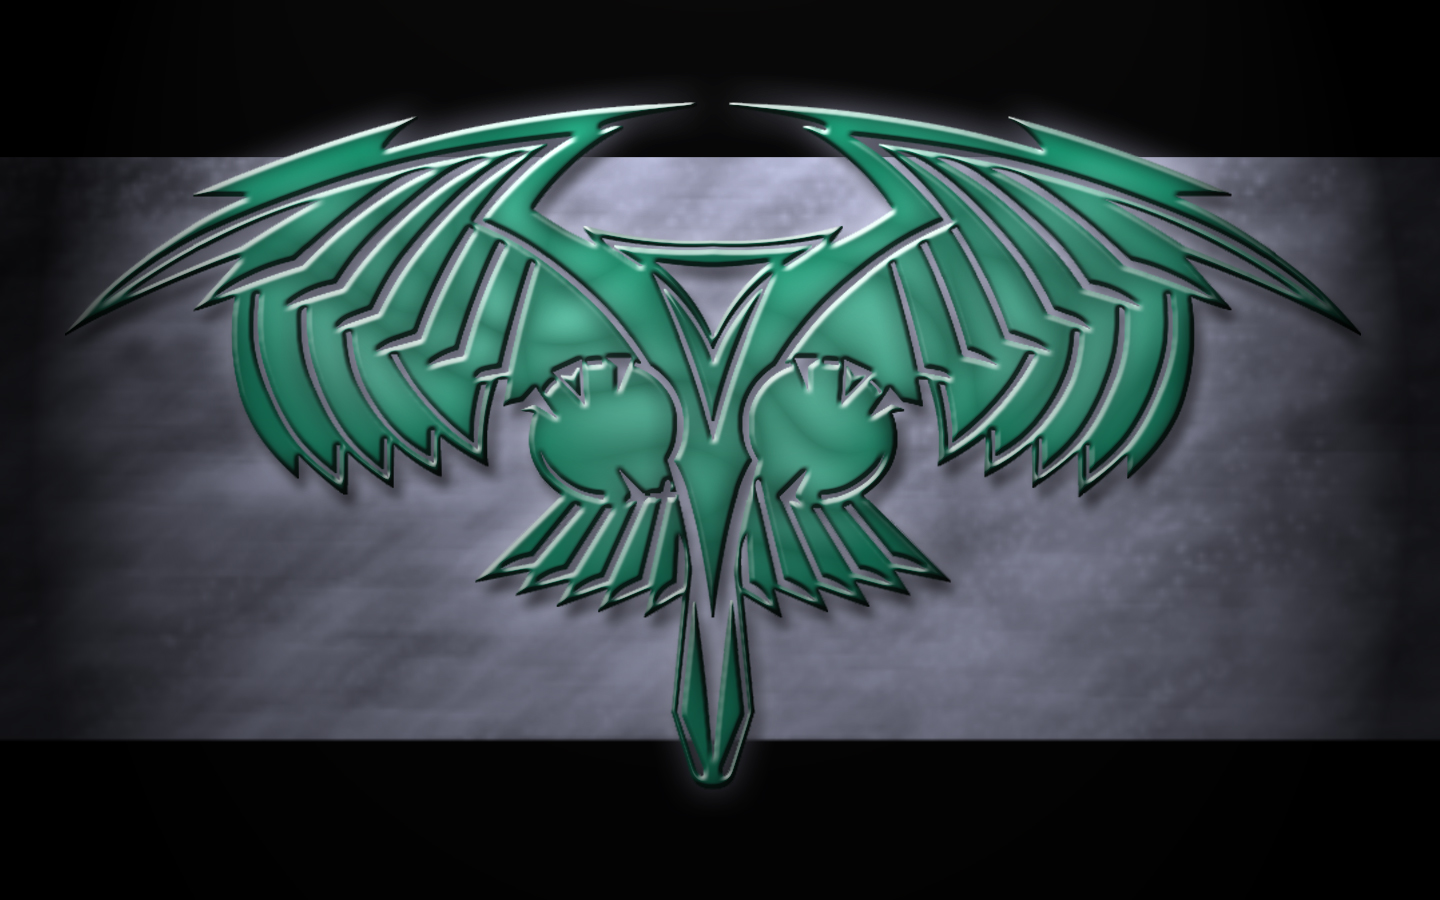 romulan star empire emblem - photo #10